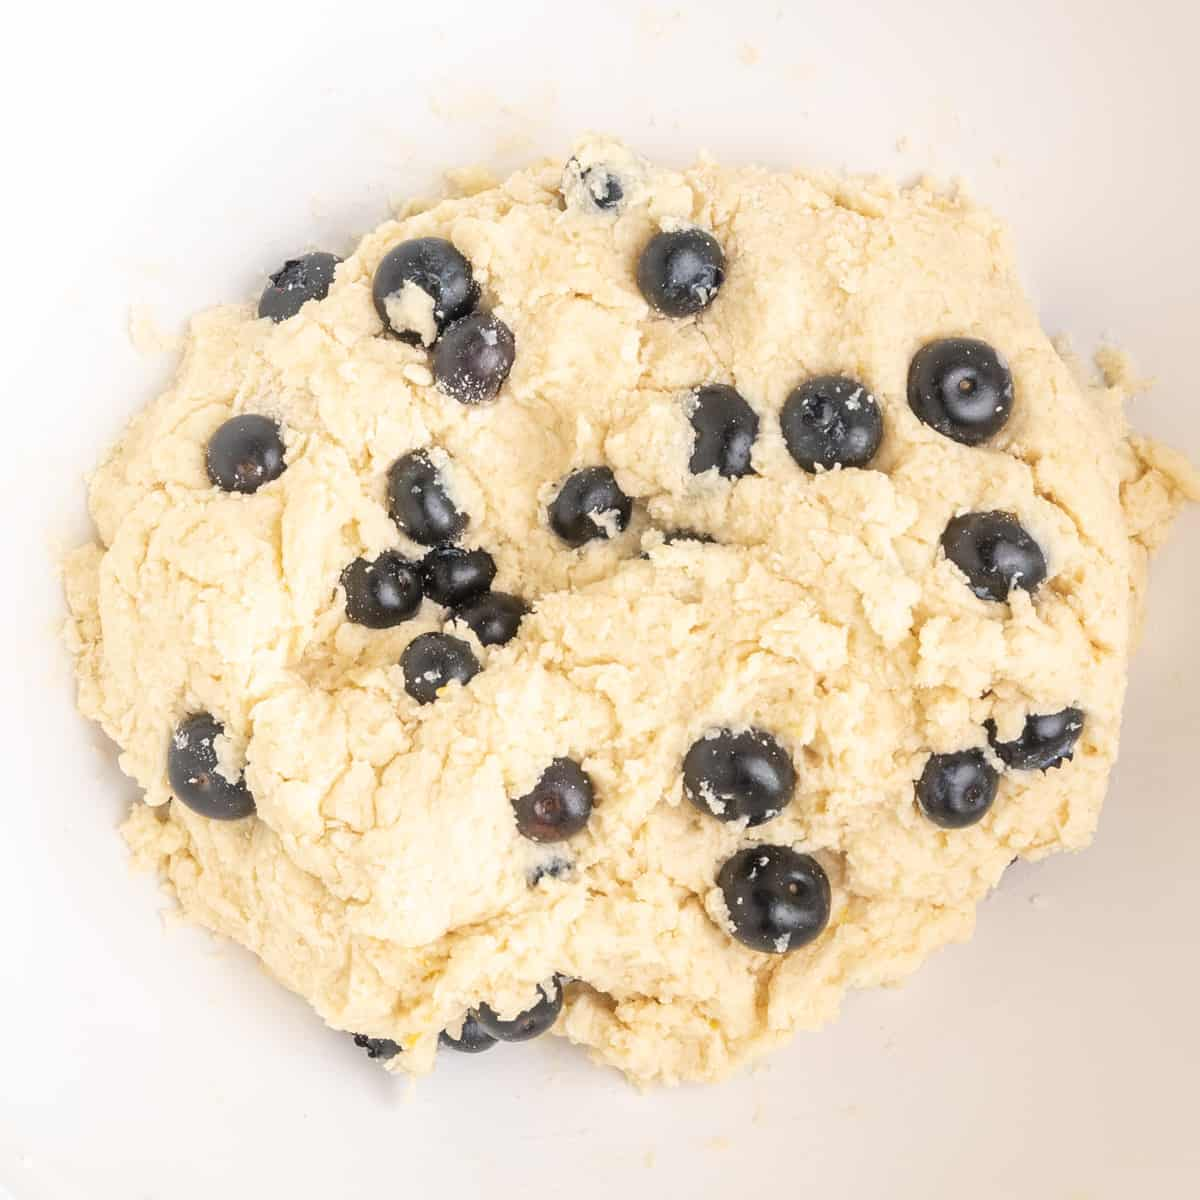 Incorporating the blueberries into the roughly mixed dough.